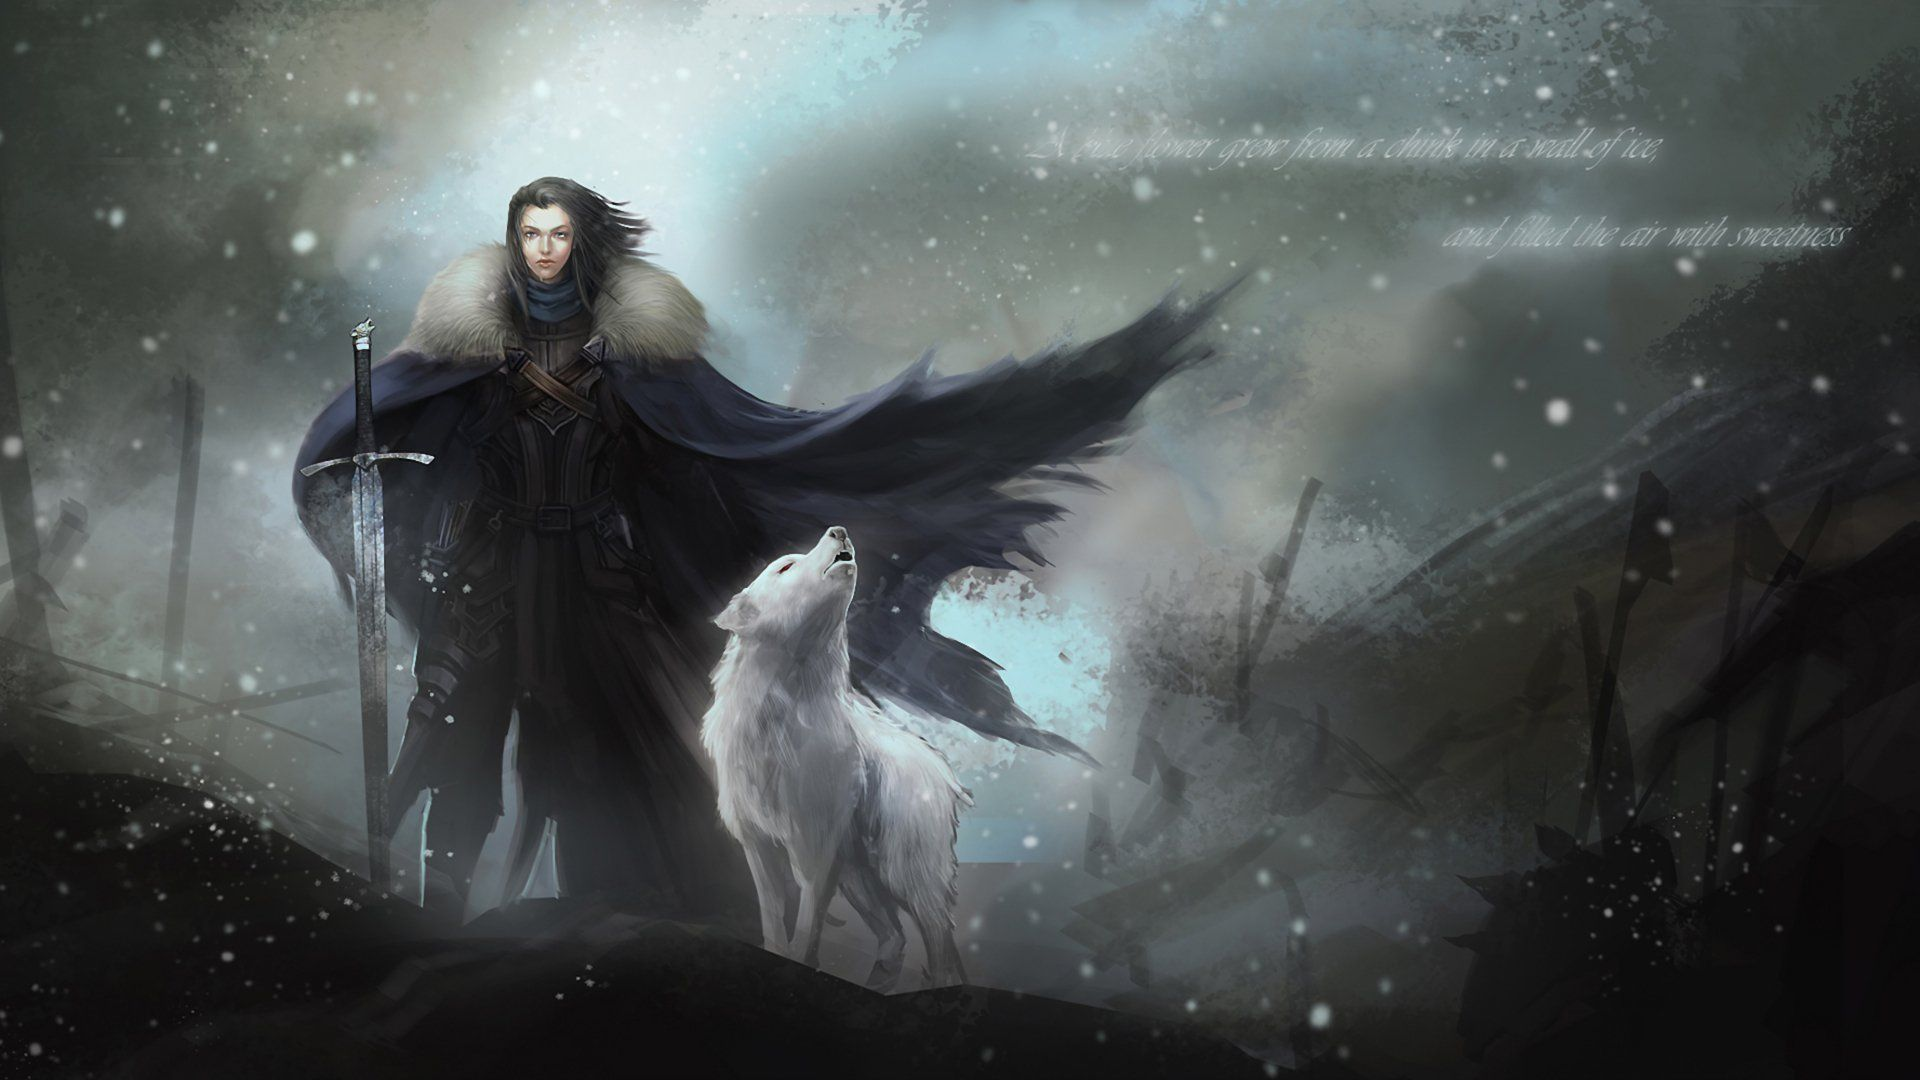 Game Of Thrones Hd Wallpaper 1920x1080 Id 31351 Game Of Thrones Art Hd Wallpaper Wallpaper Gallery